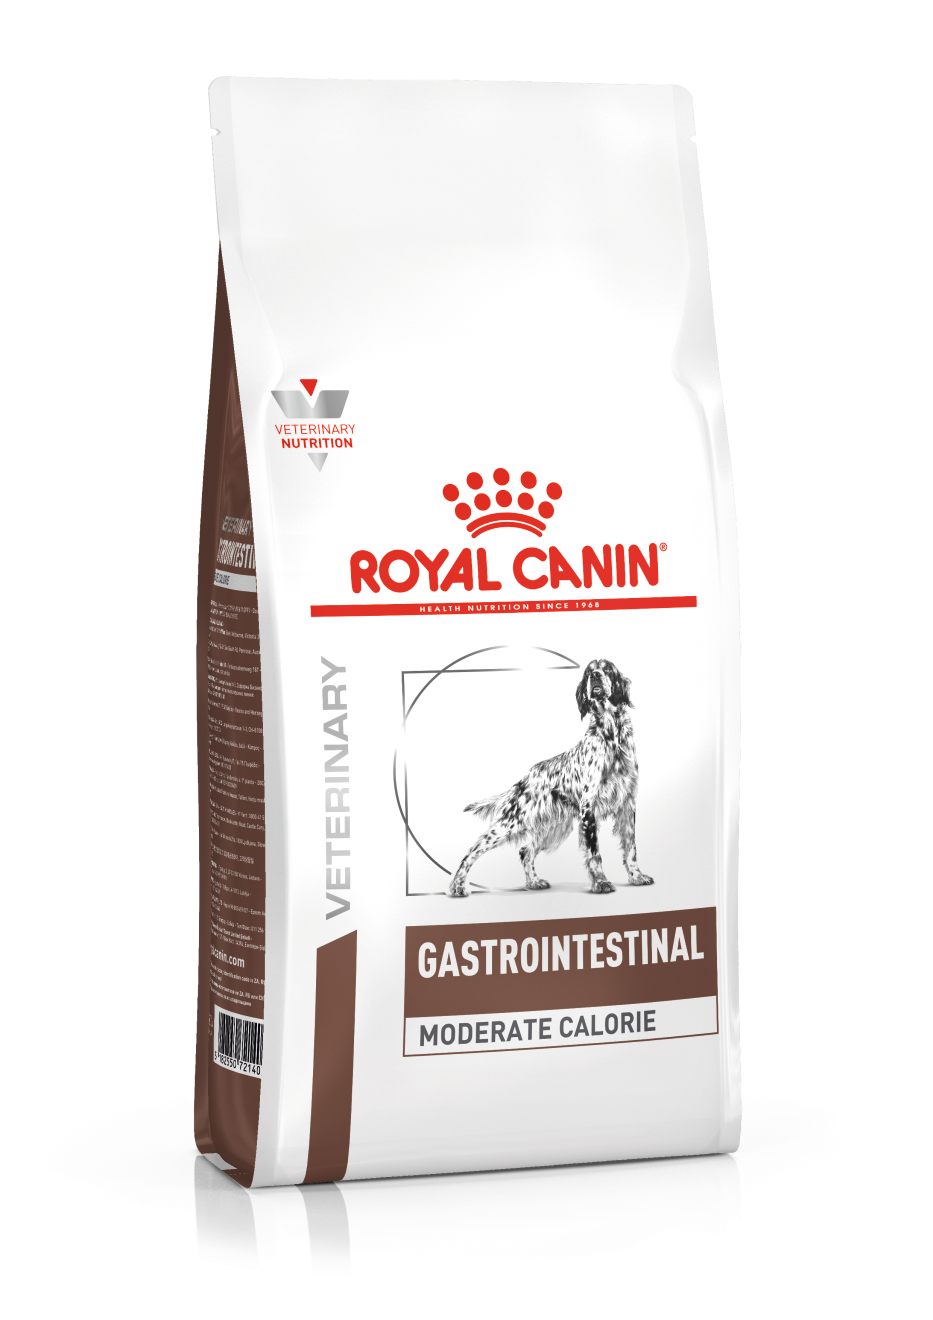 Royal Canin Gastrointestinal Moderate Calorie 7,5 kg (Hund)